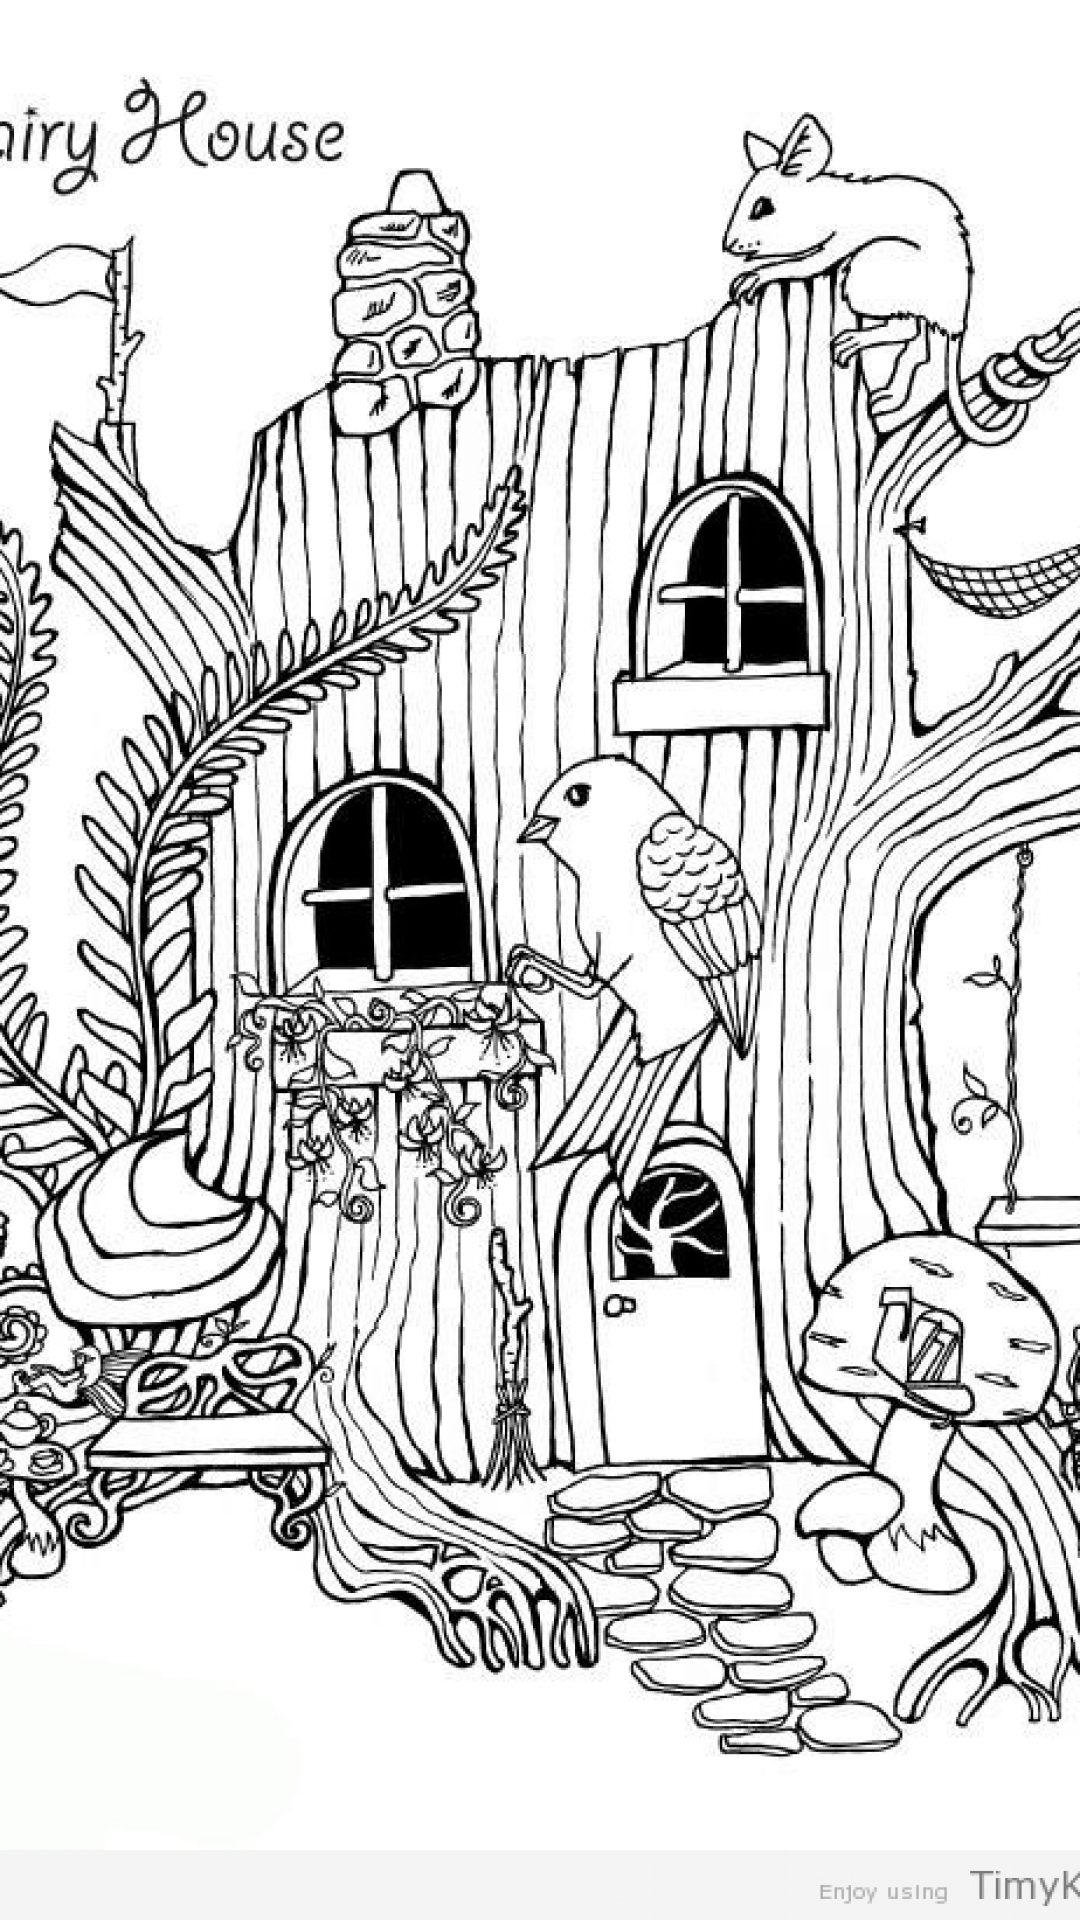 Inside House Drawing: Fairy House Drawing At GetDrawings